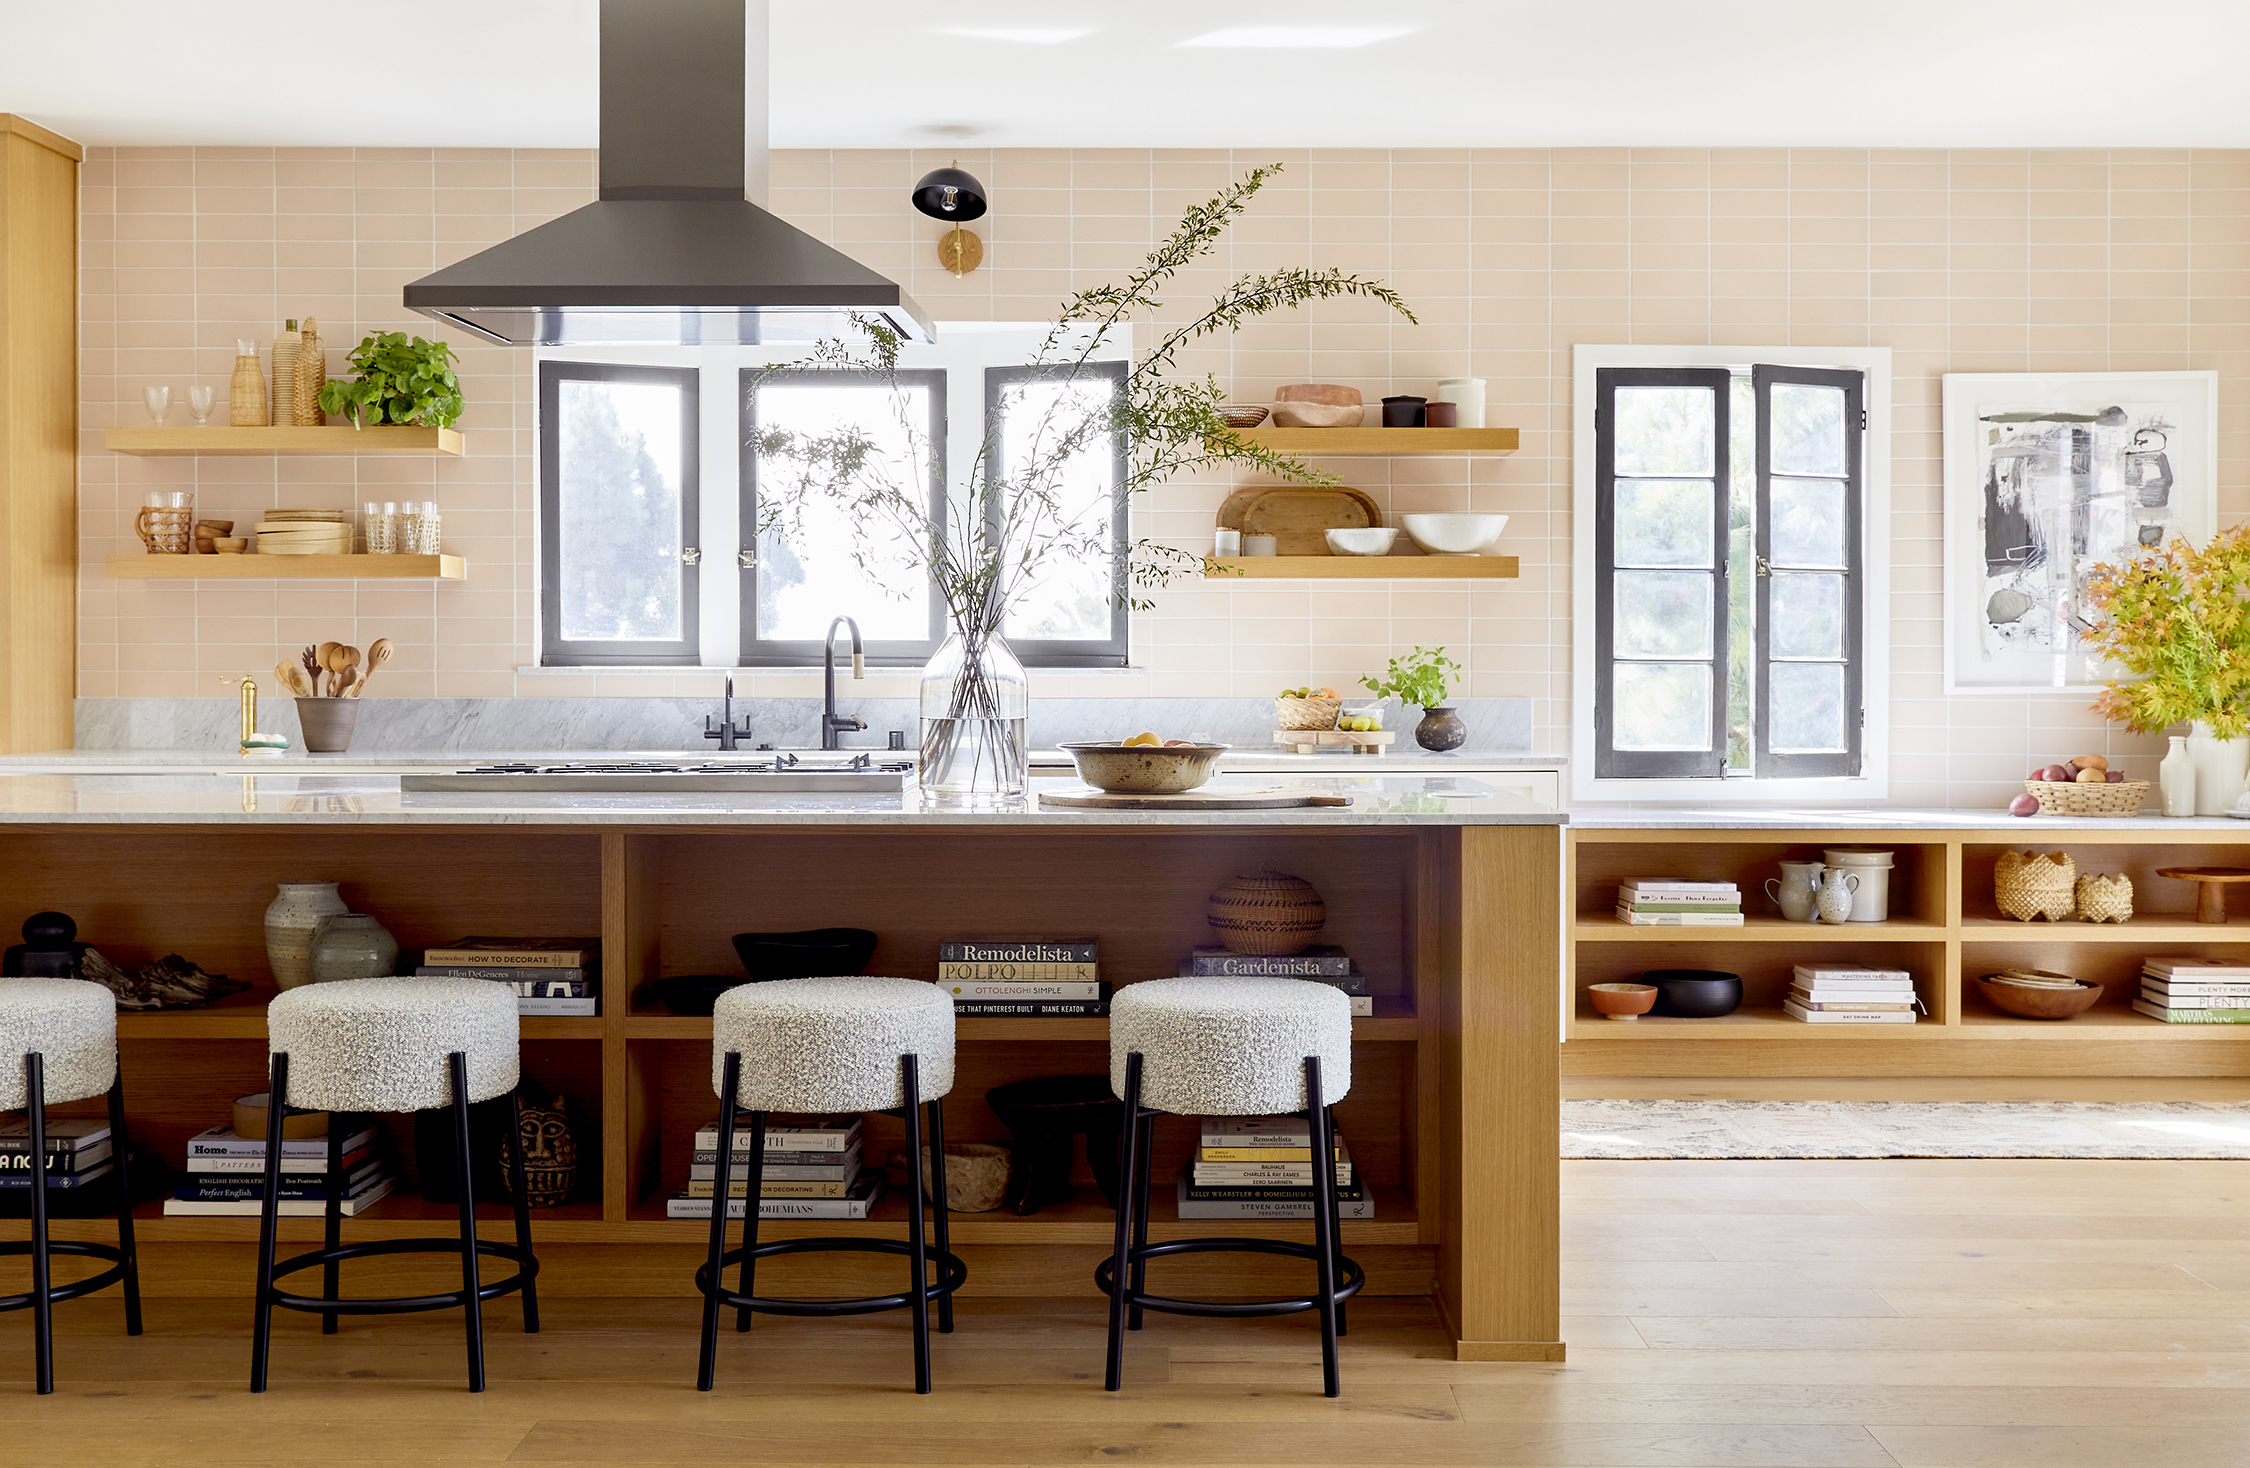 GINNY_MACDONALD_JACLYN_JOHNSON_KITCHEN_ORGANIC_DESERT_FEATURED_IMAGE